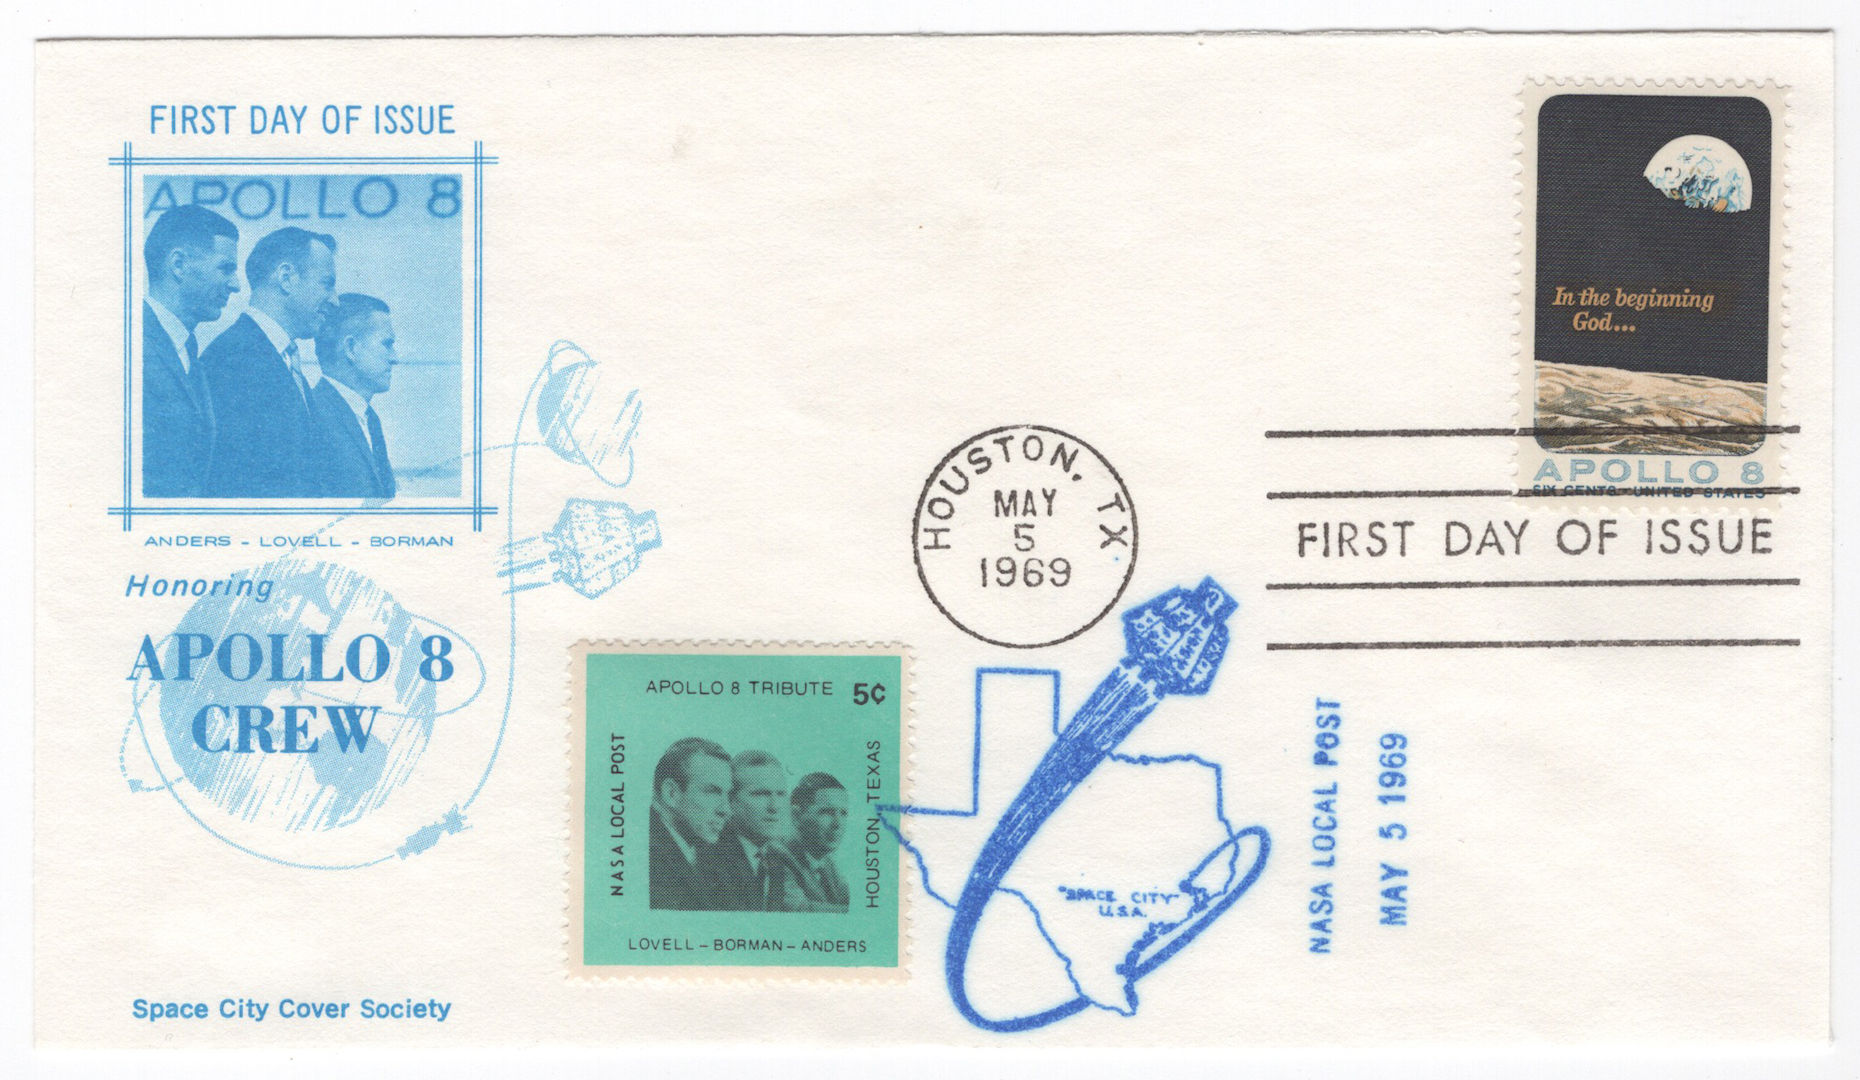 ERM-1969-ENVELOPE-HONORING_CREW-SPACE_CITY_COVER_SOCIETY.jpg